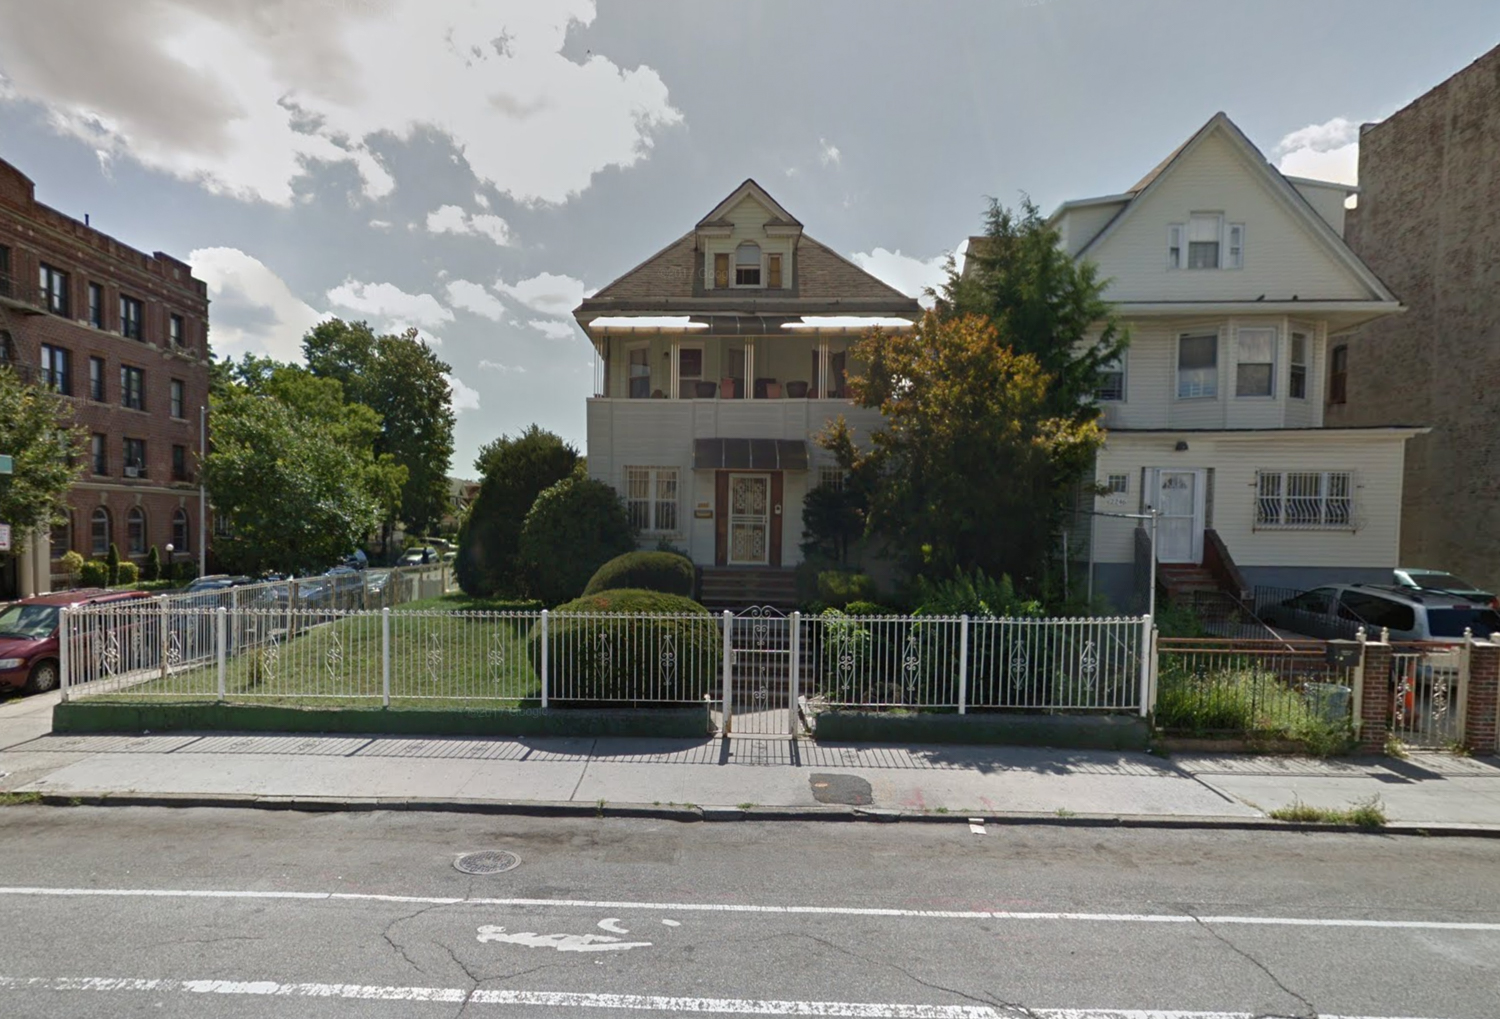 2250 Clarendon Road, via Google Maps